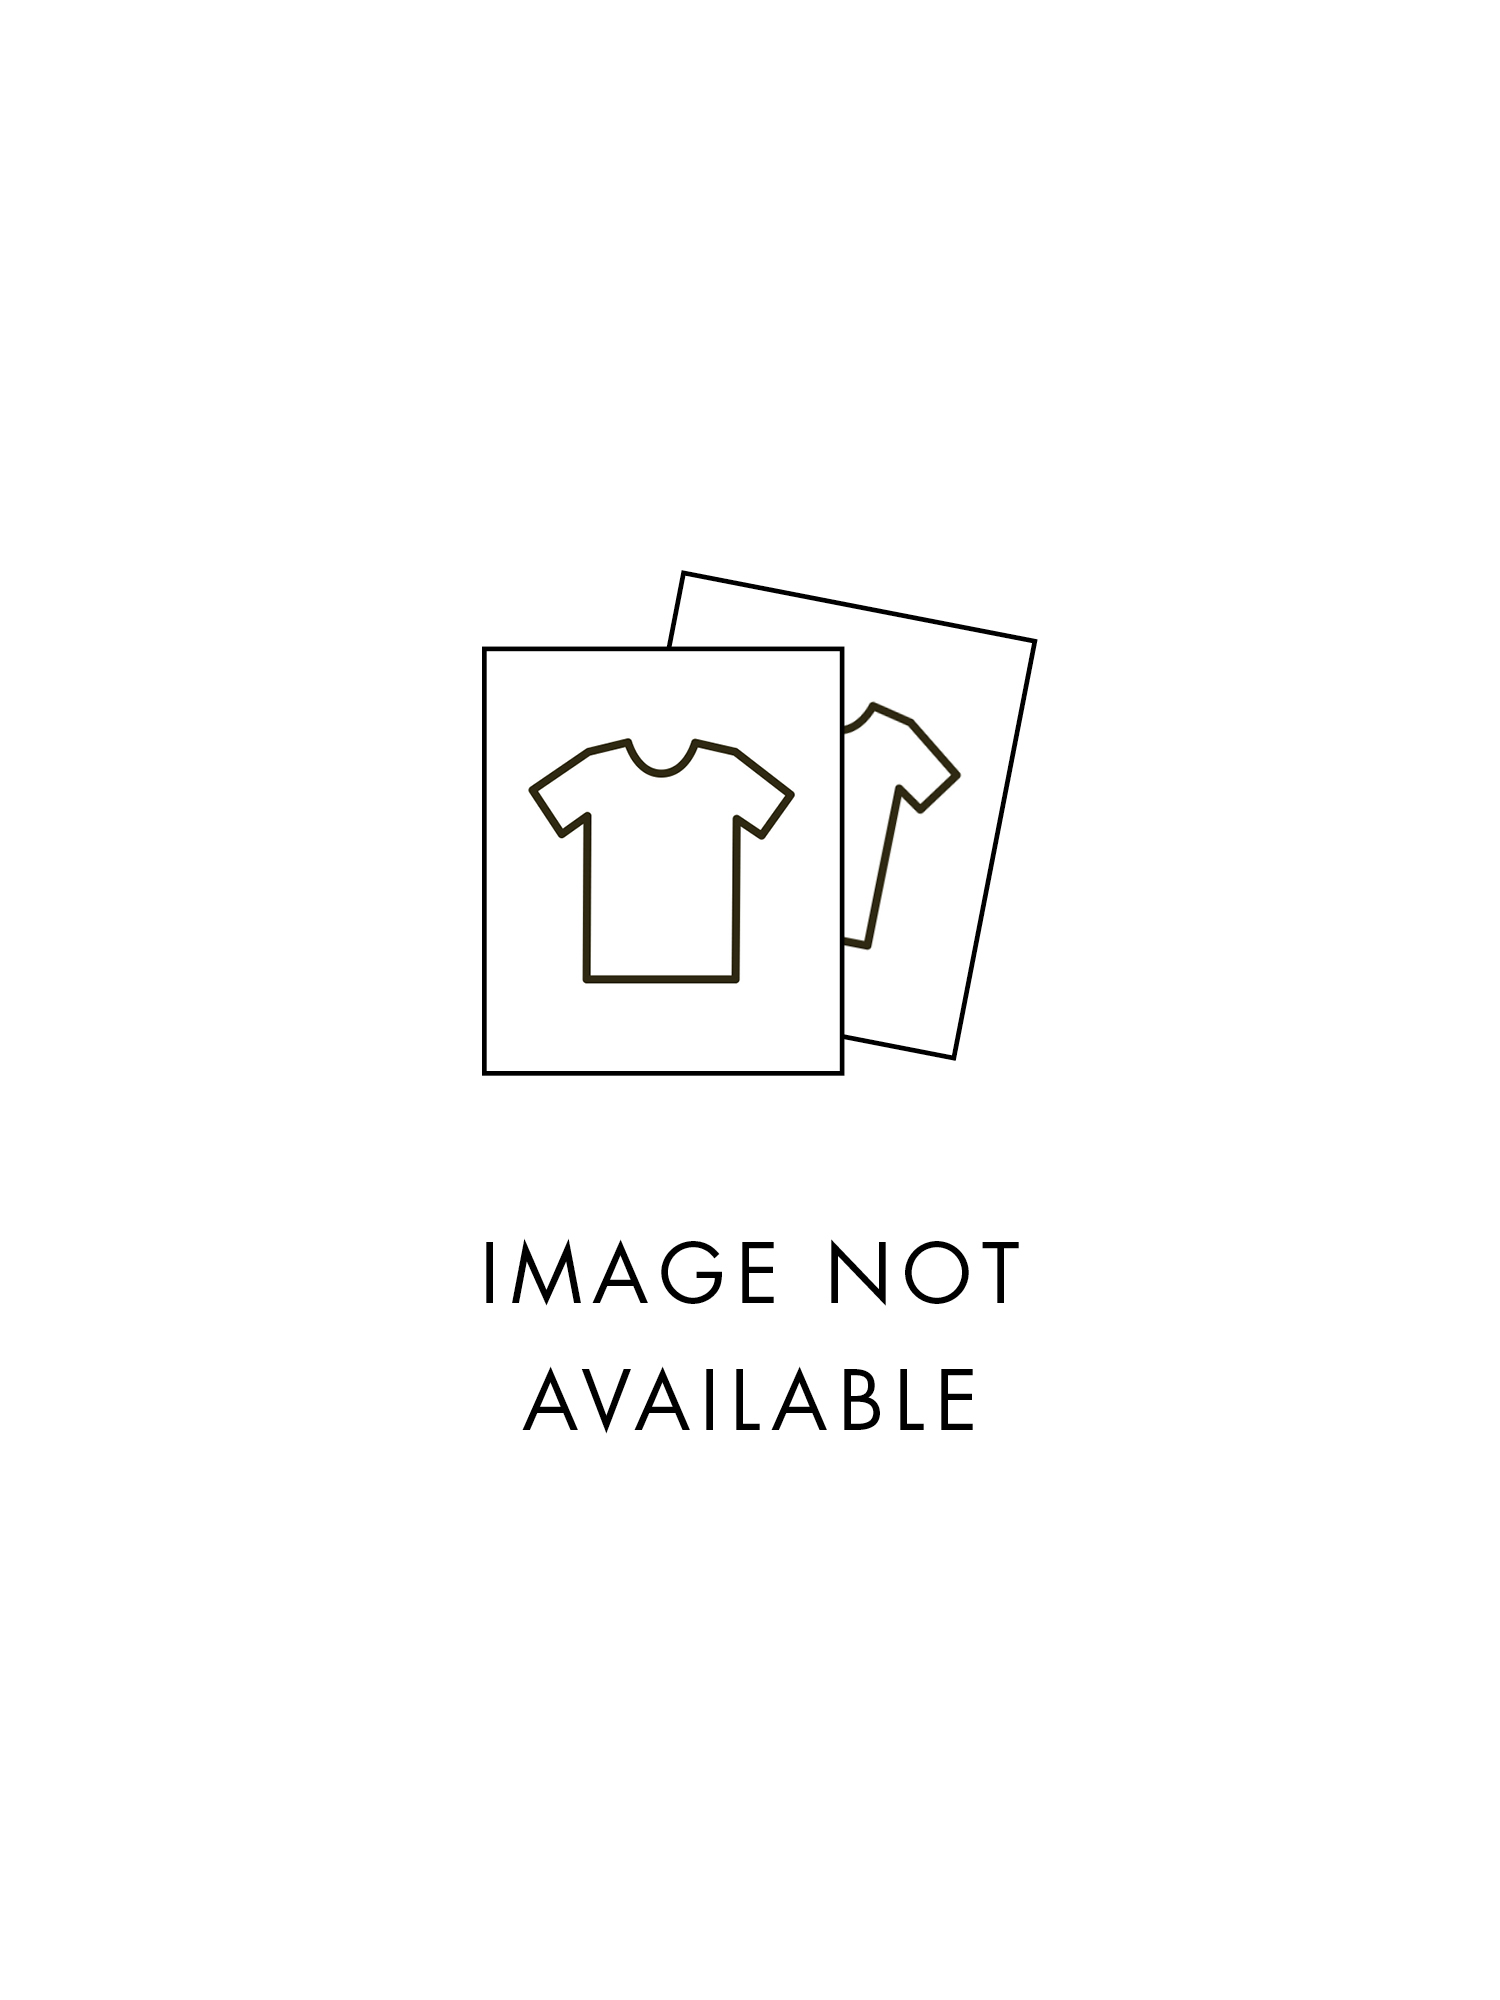 HANRO_B_M_CottonSporty_Boxers_073505_070593_040.jpg